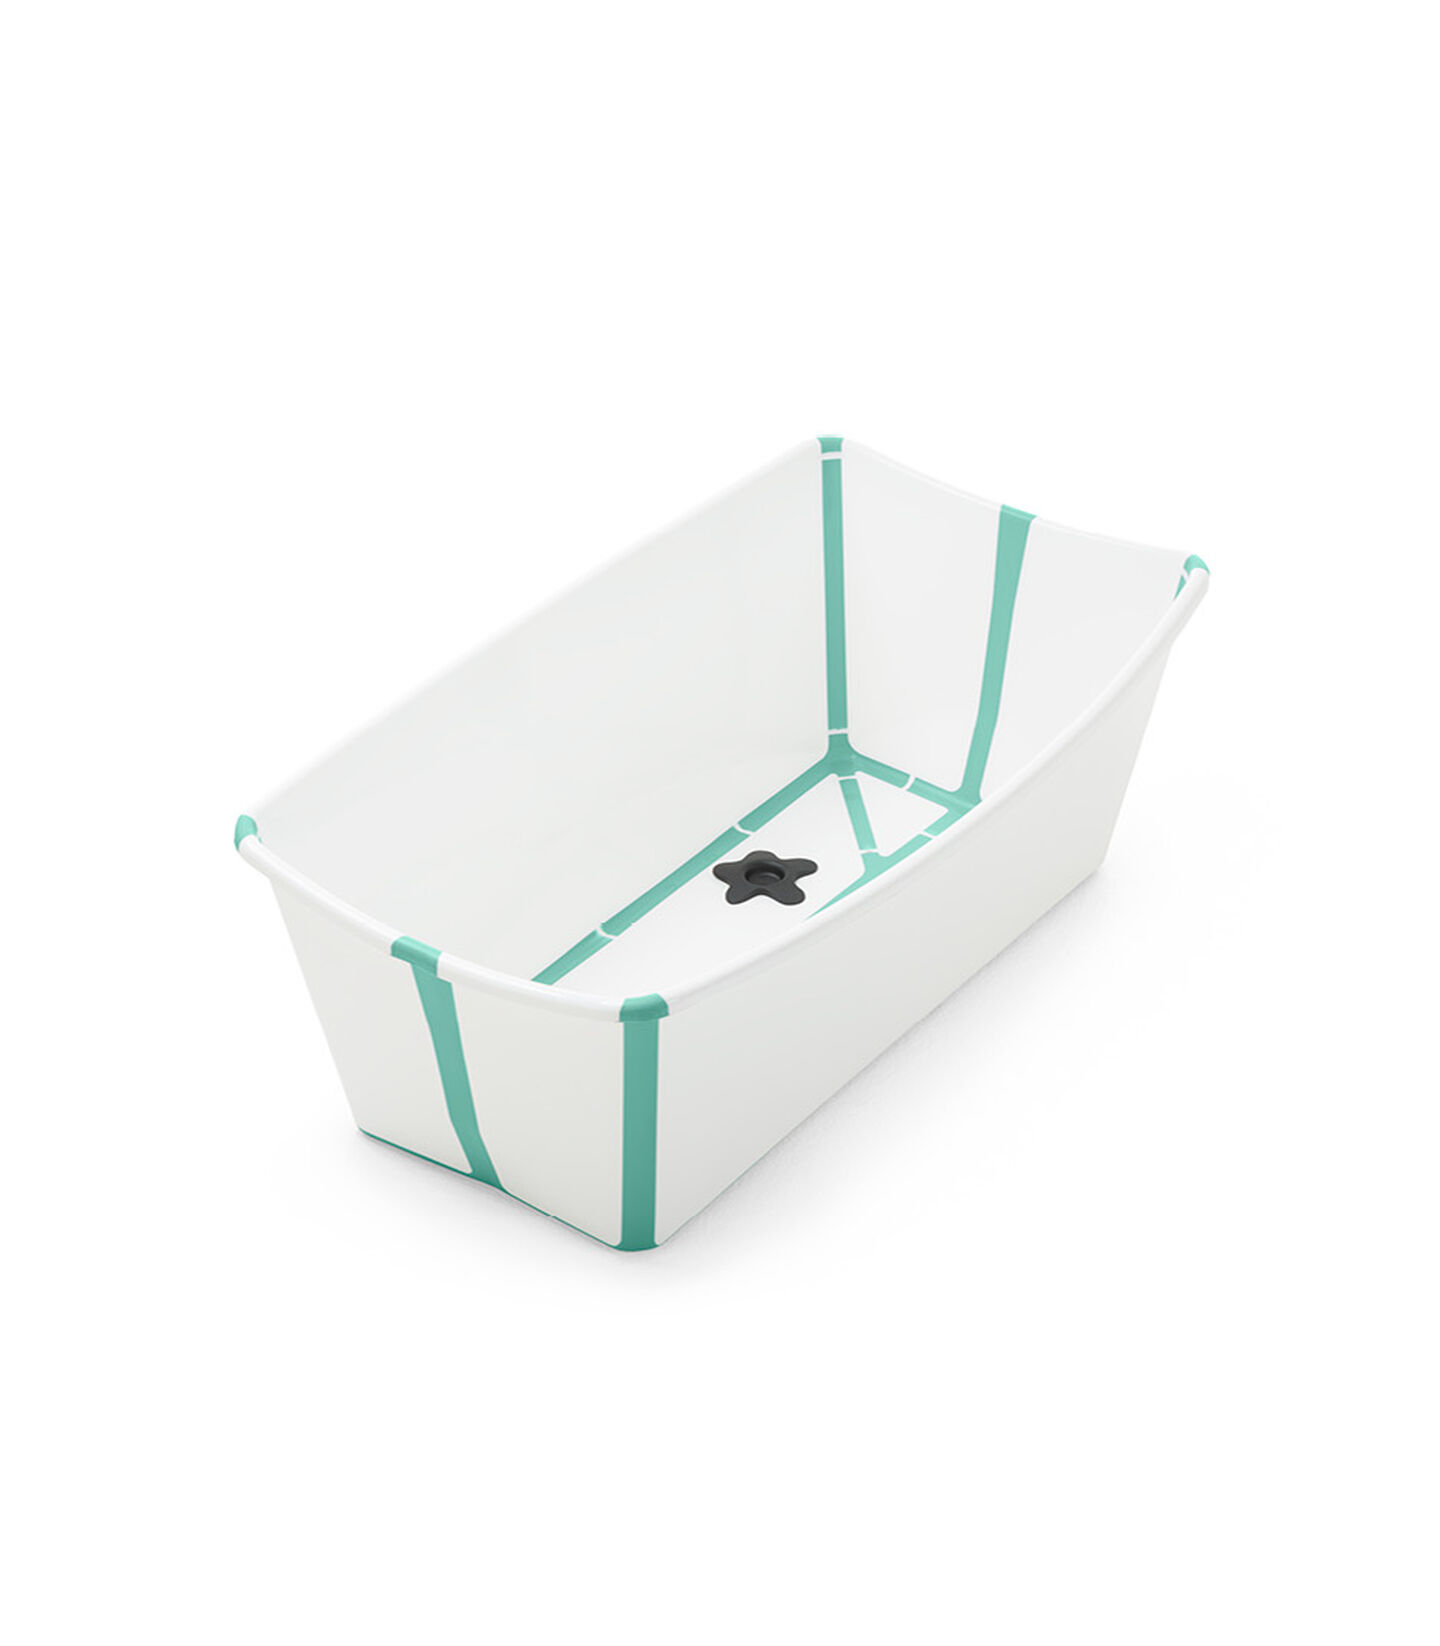 Stokke® Flexi Bath® Heat White Aqua, White Aqua, mainview view 2